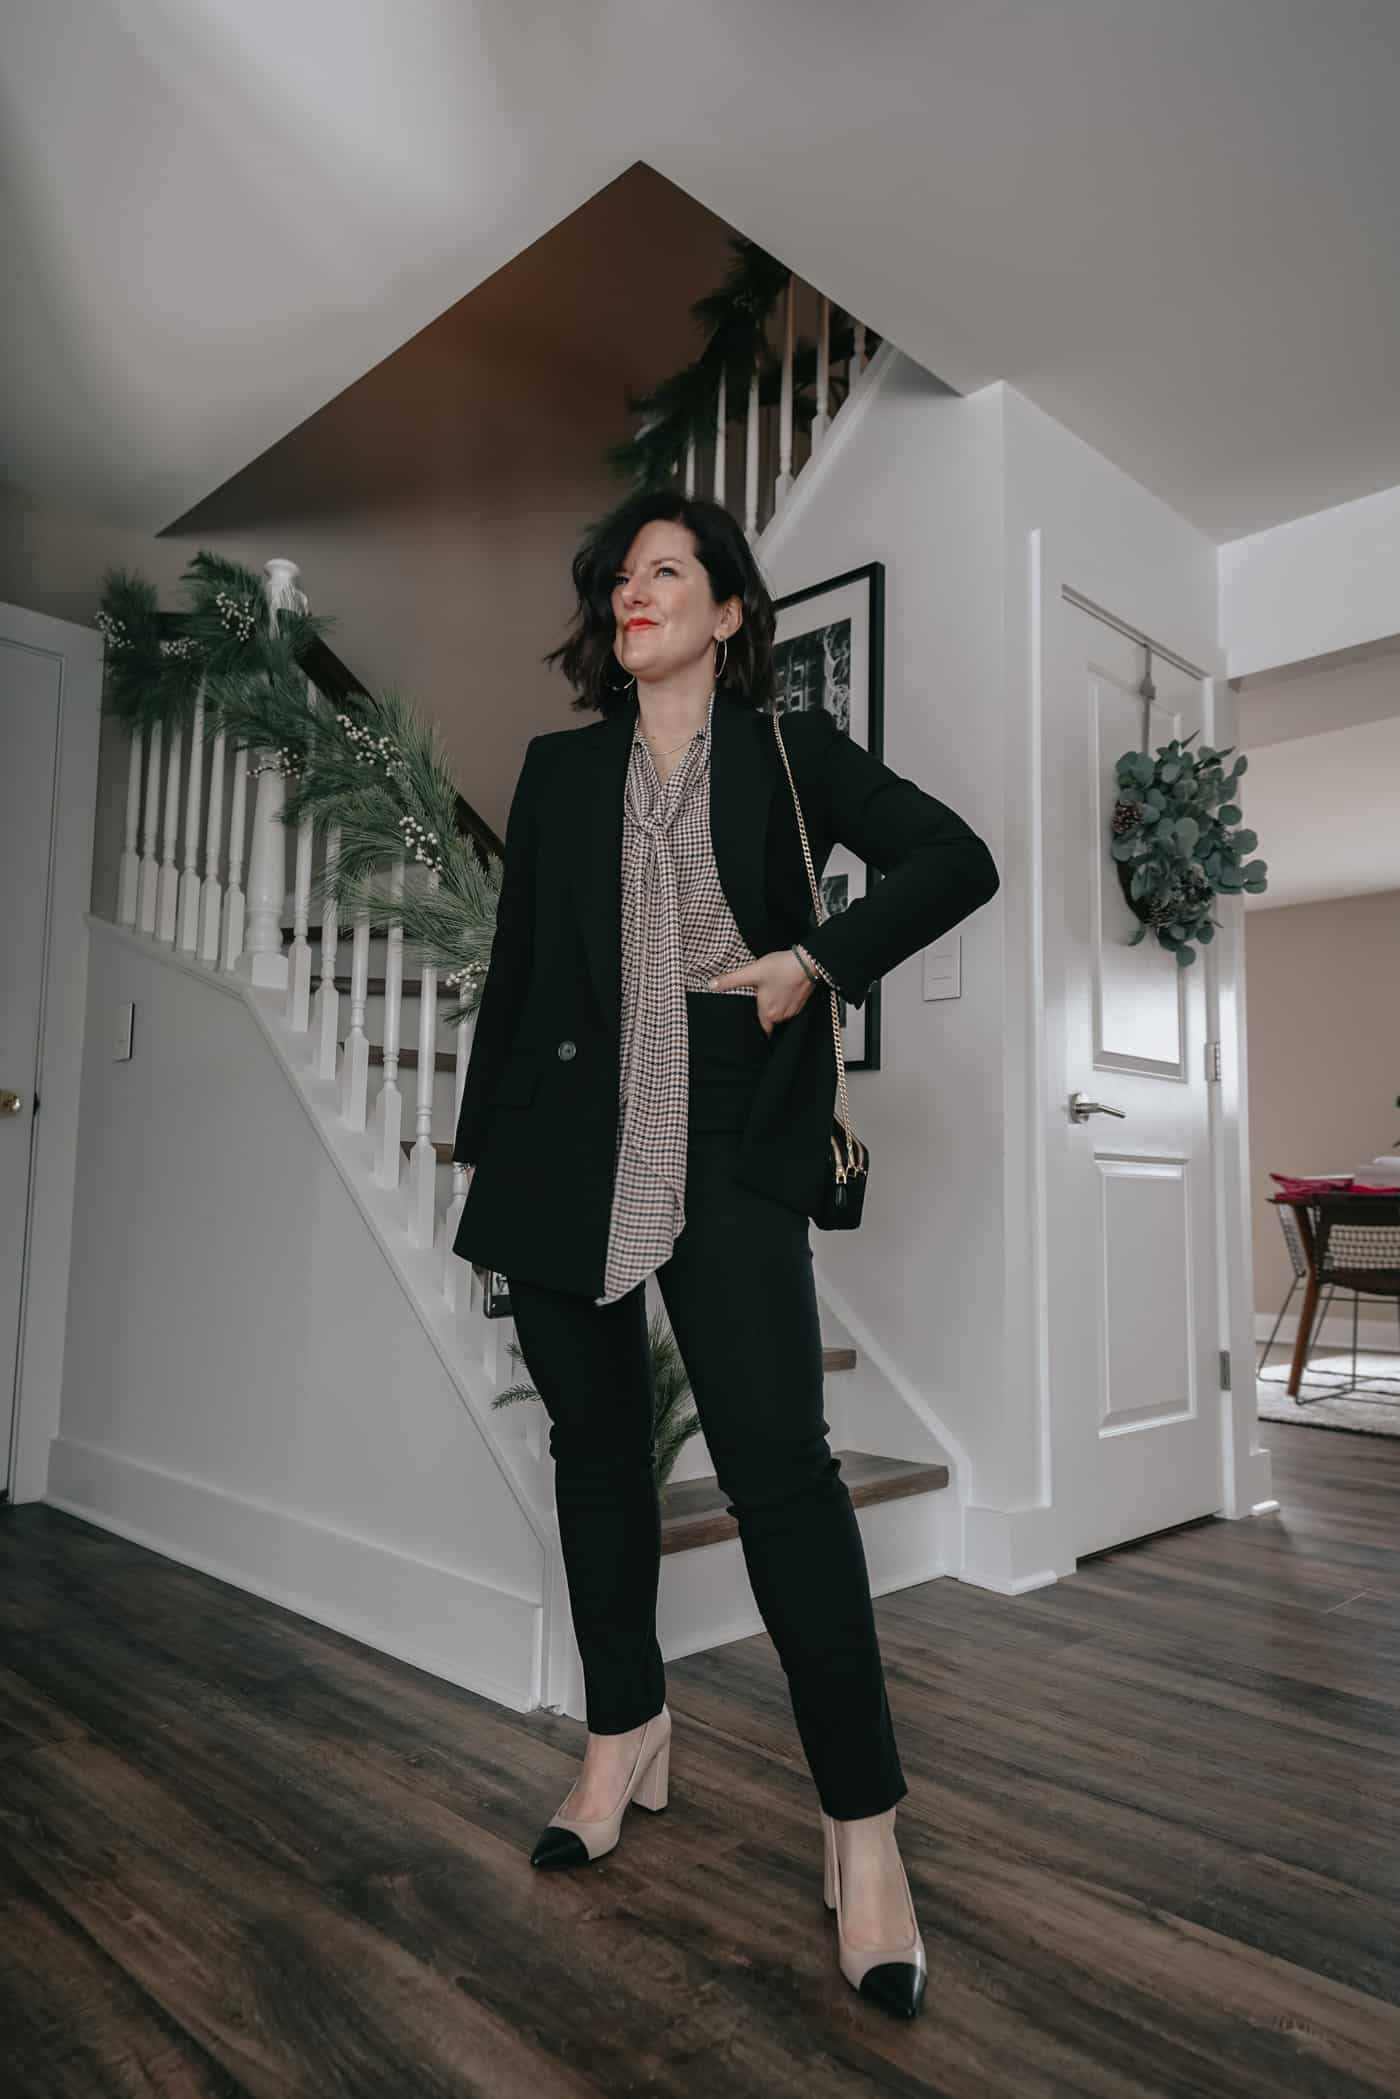 A Lily Love Affair showing you 5 ways to wear womens black pants outfit. Wearing black blazer, prada handbag, black and white blazer, work outfit, petite black pants, fall outfit ideas, what to wear to work, black pants to work, what to wear to work